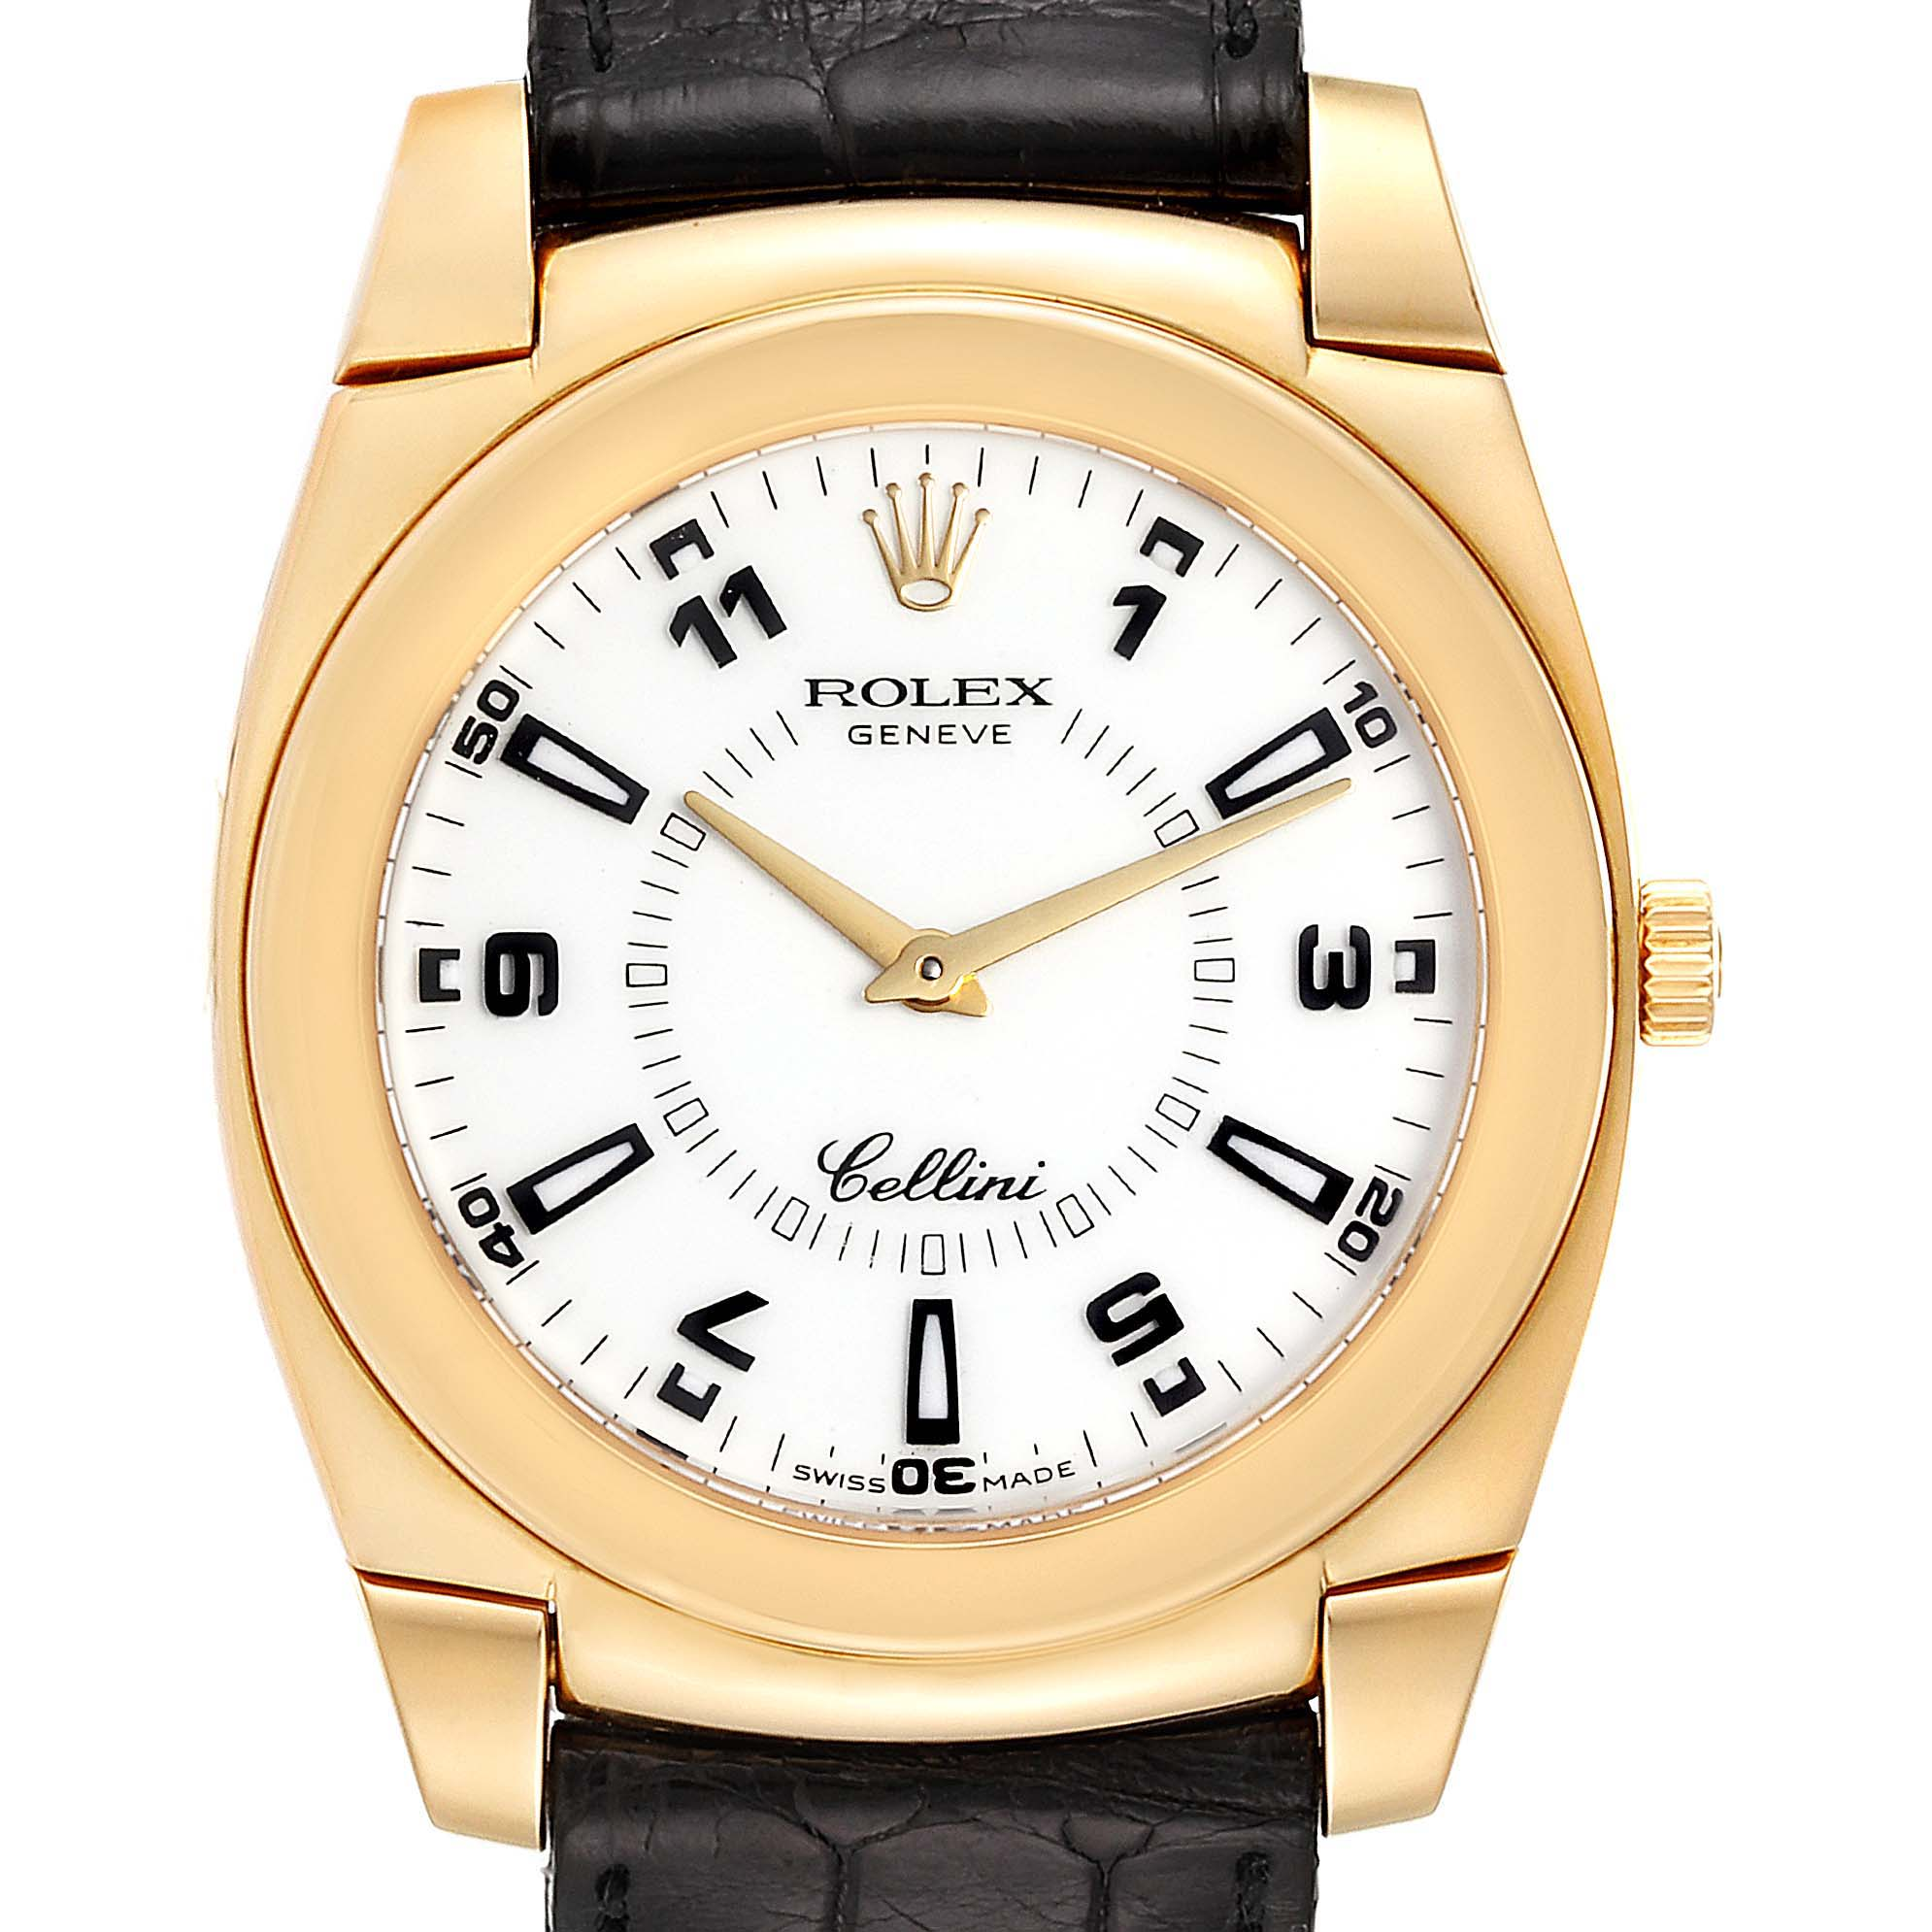 Rolex Cellini Cestello 18K Yellow Gold White Dial Mens Watch 5330